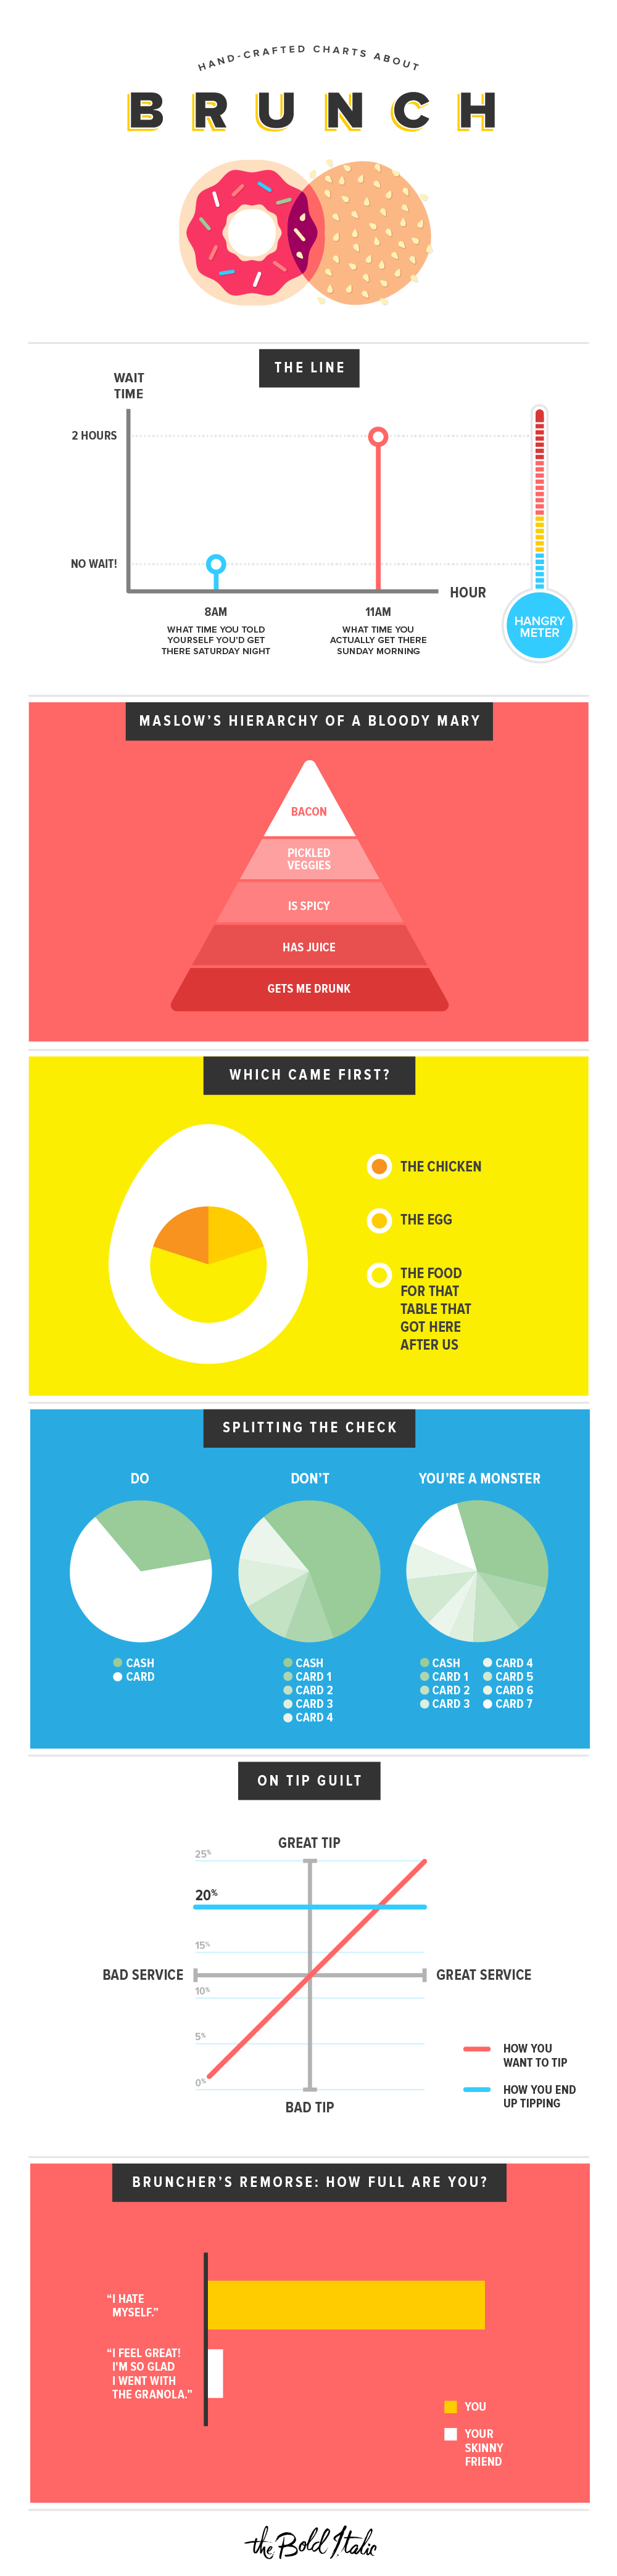 Charts about brunch by Michelle Rial for The Bold Italic